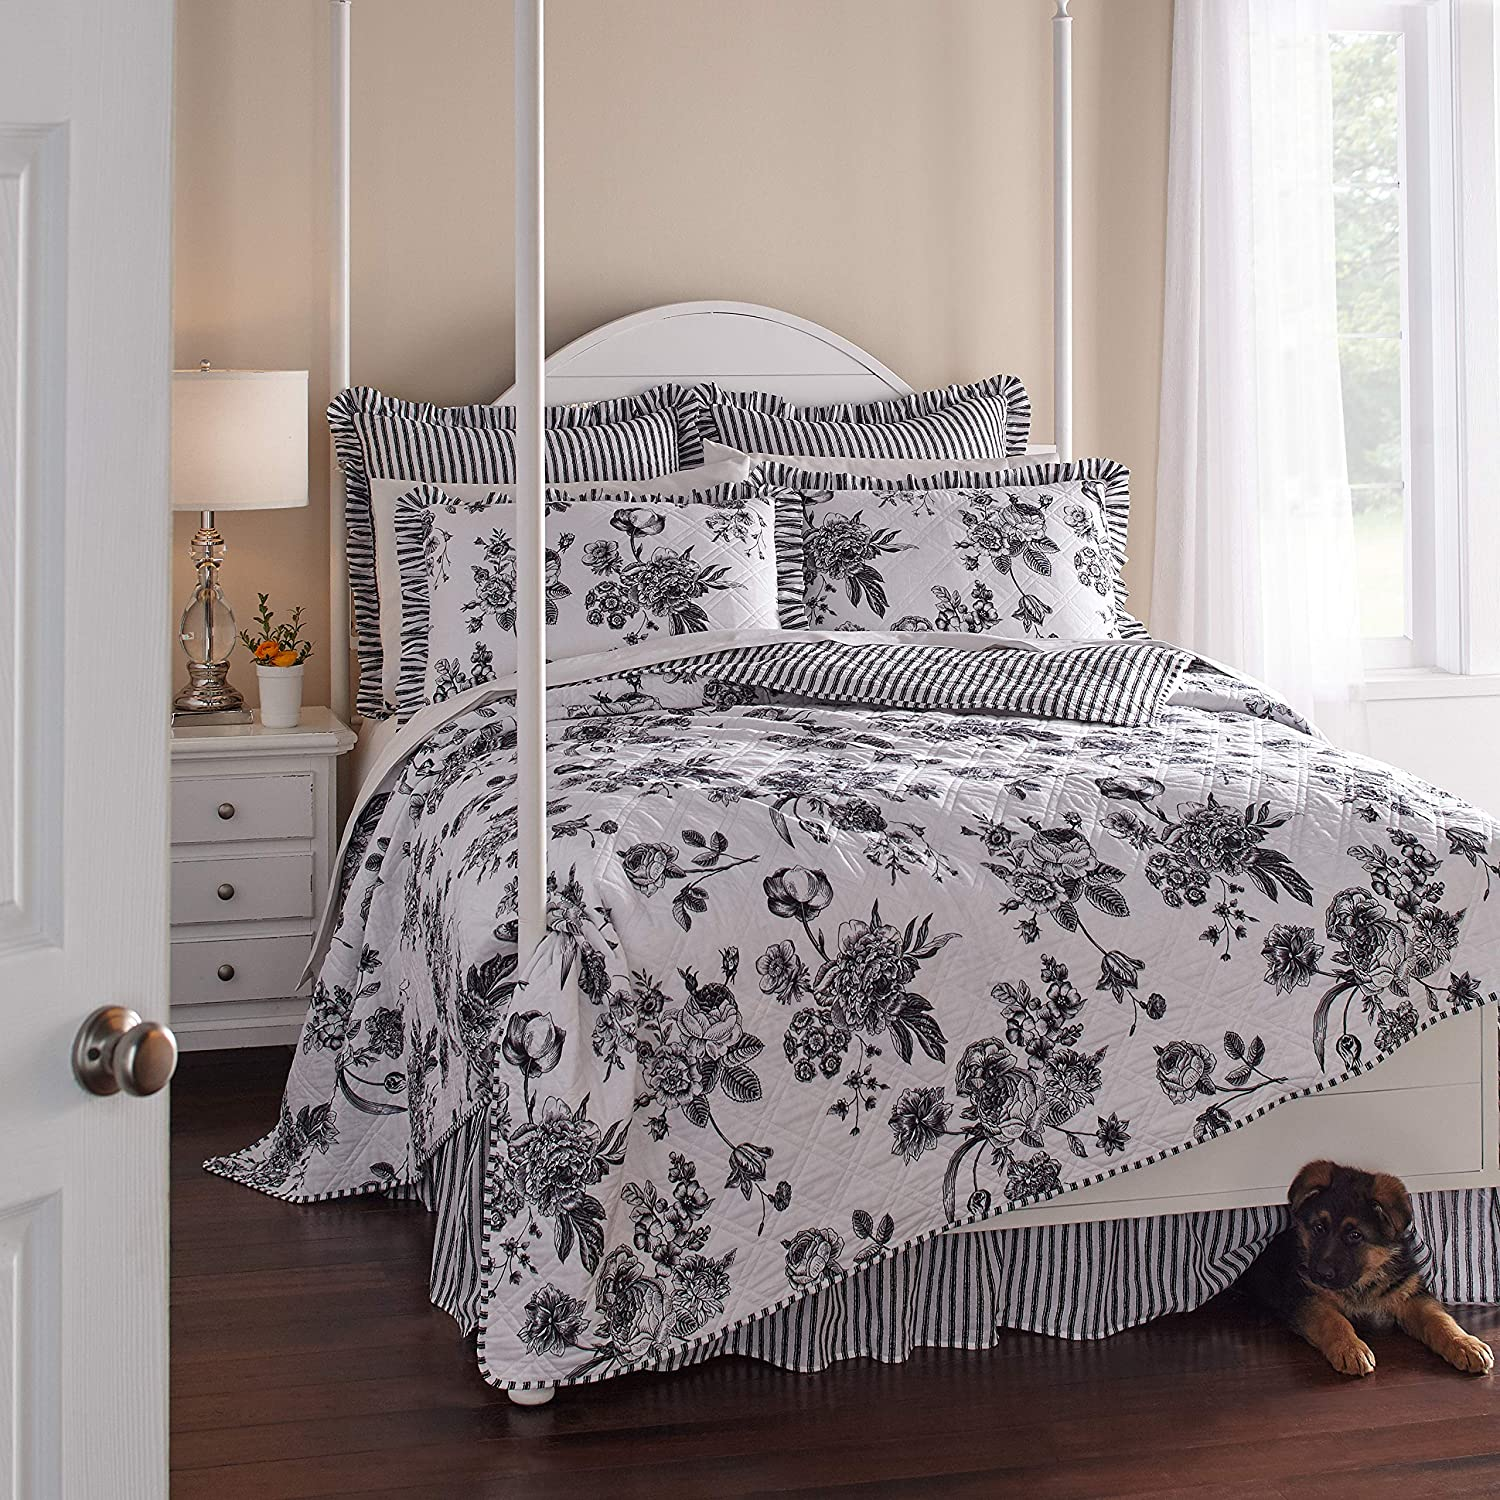 BrylaneHome Frances 6 Limited time trial price Piece Quilt White King Set Ranking TOP20 - Black